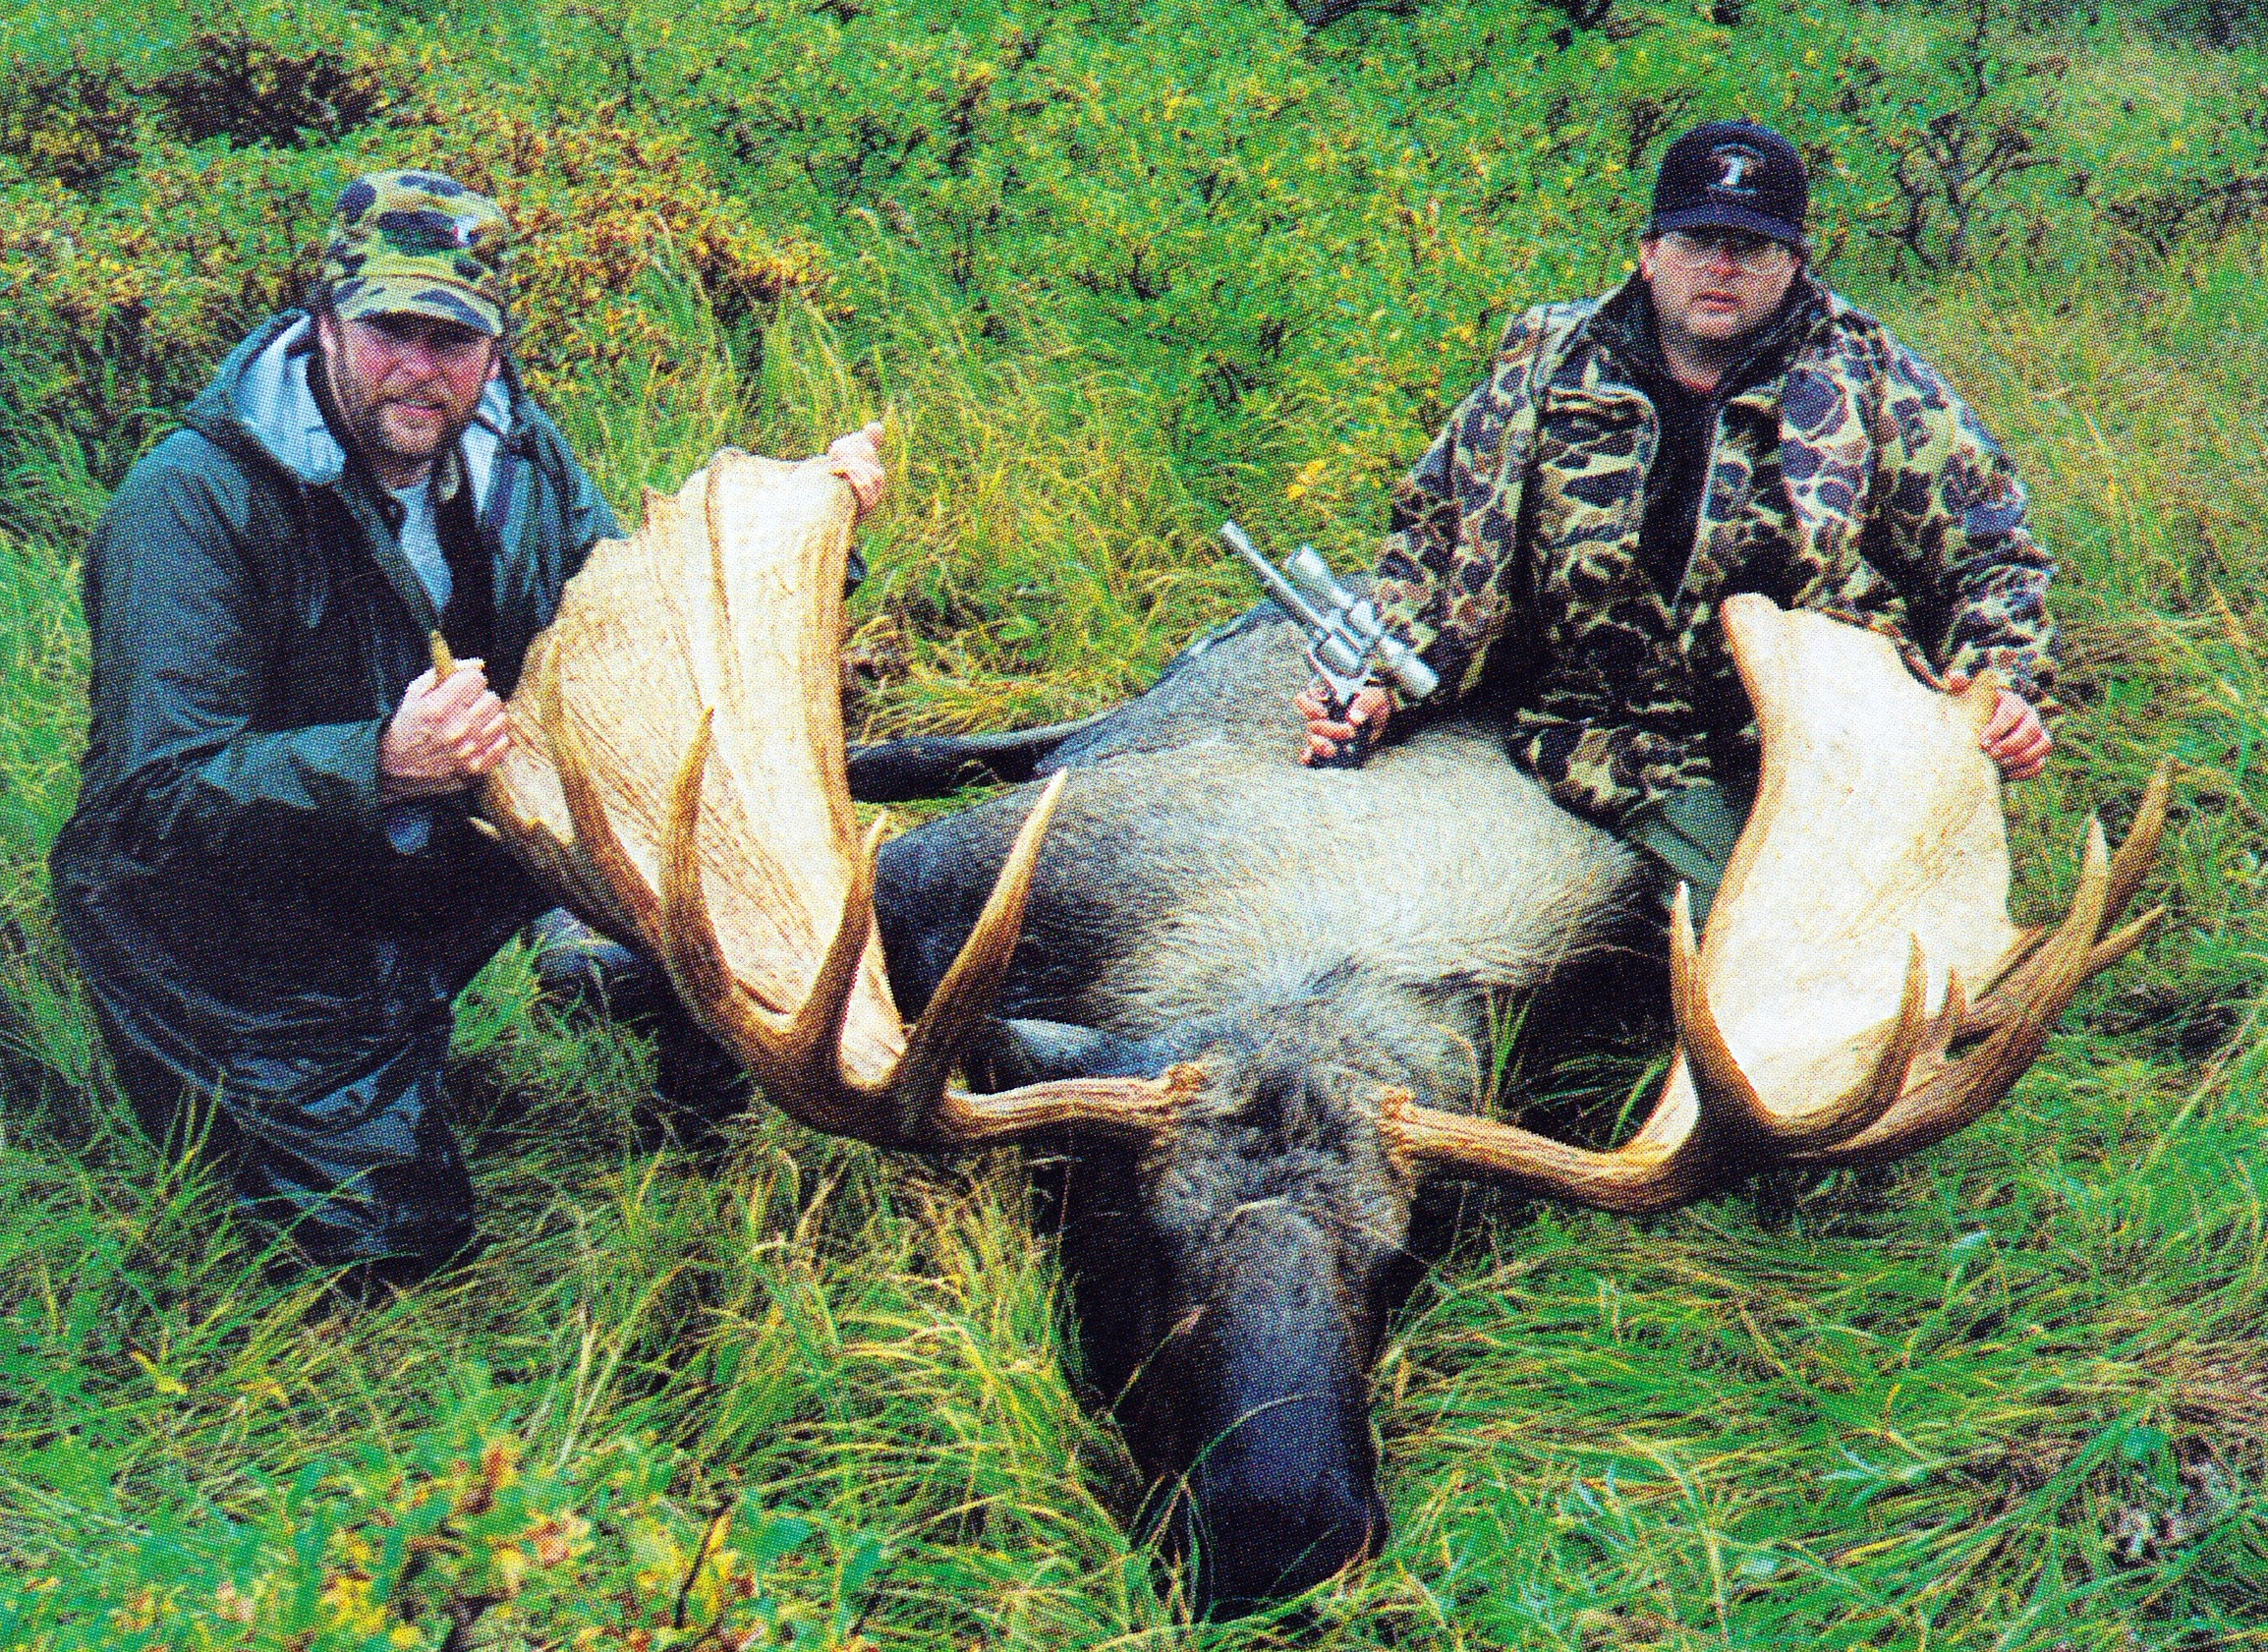 """(R to L) Roy Joblonski, NJ, and guide Brent Hudson with Roy's 71 1/2"""" spread moose that he took with his pistol. It was taken in '92 on the Alaska Peninsula."""